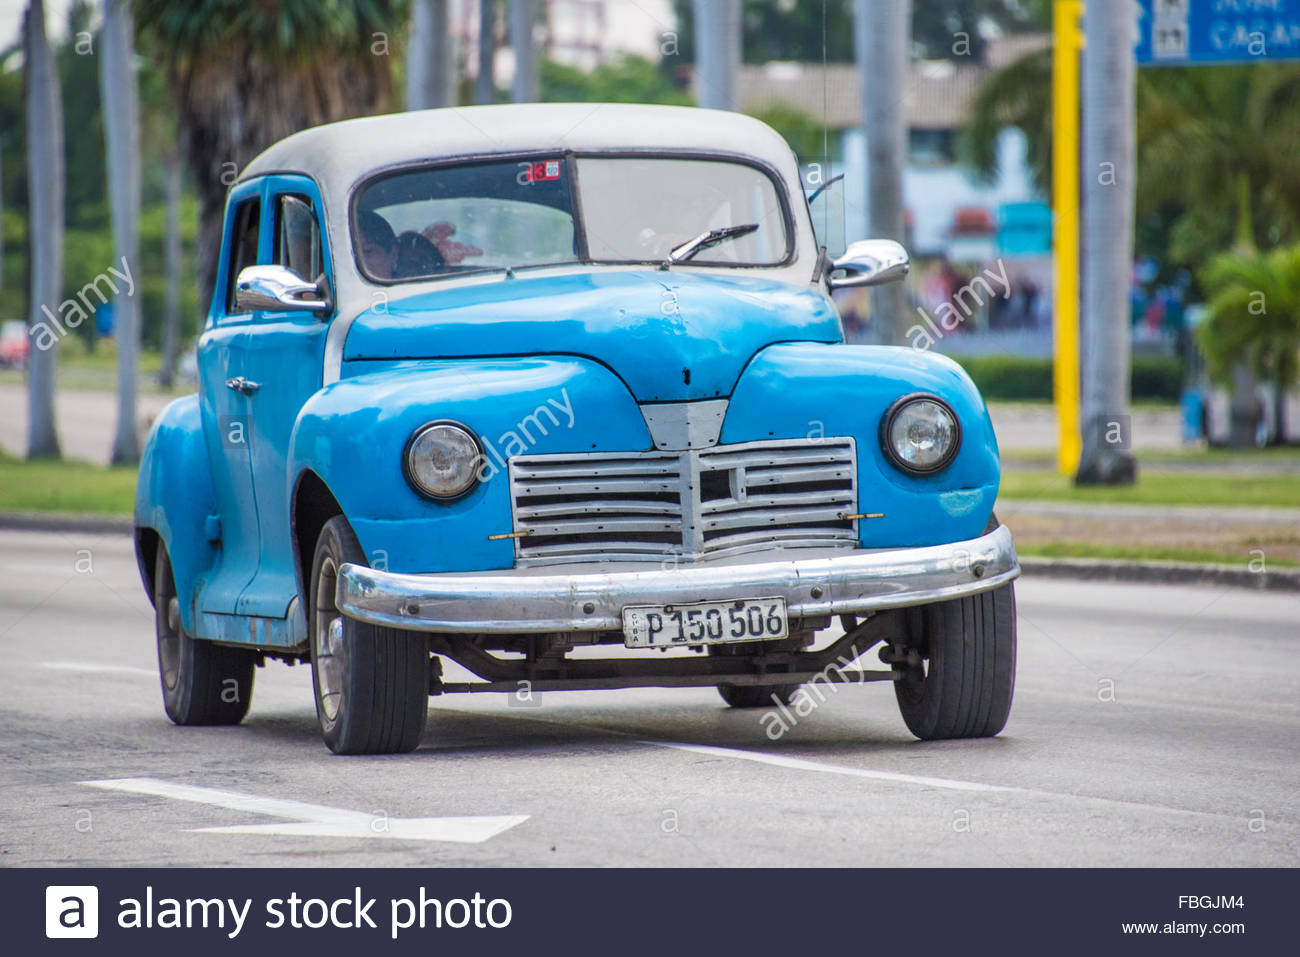 Old Vintage Cars Vehicles In Moving Action Havana Cuba The Old Stock Photo Alamy